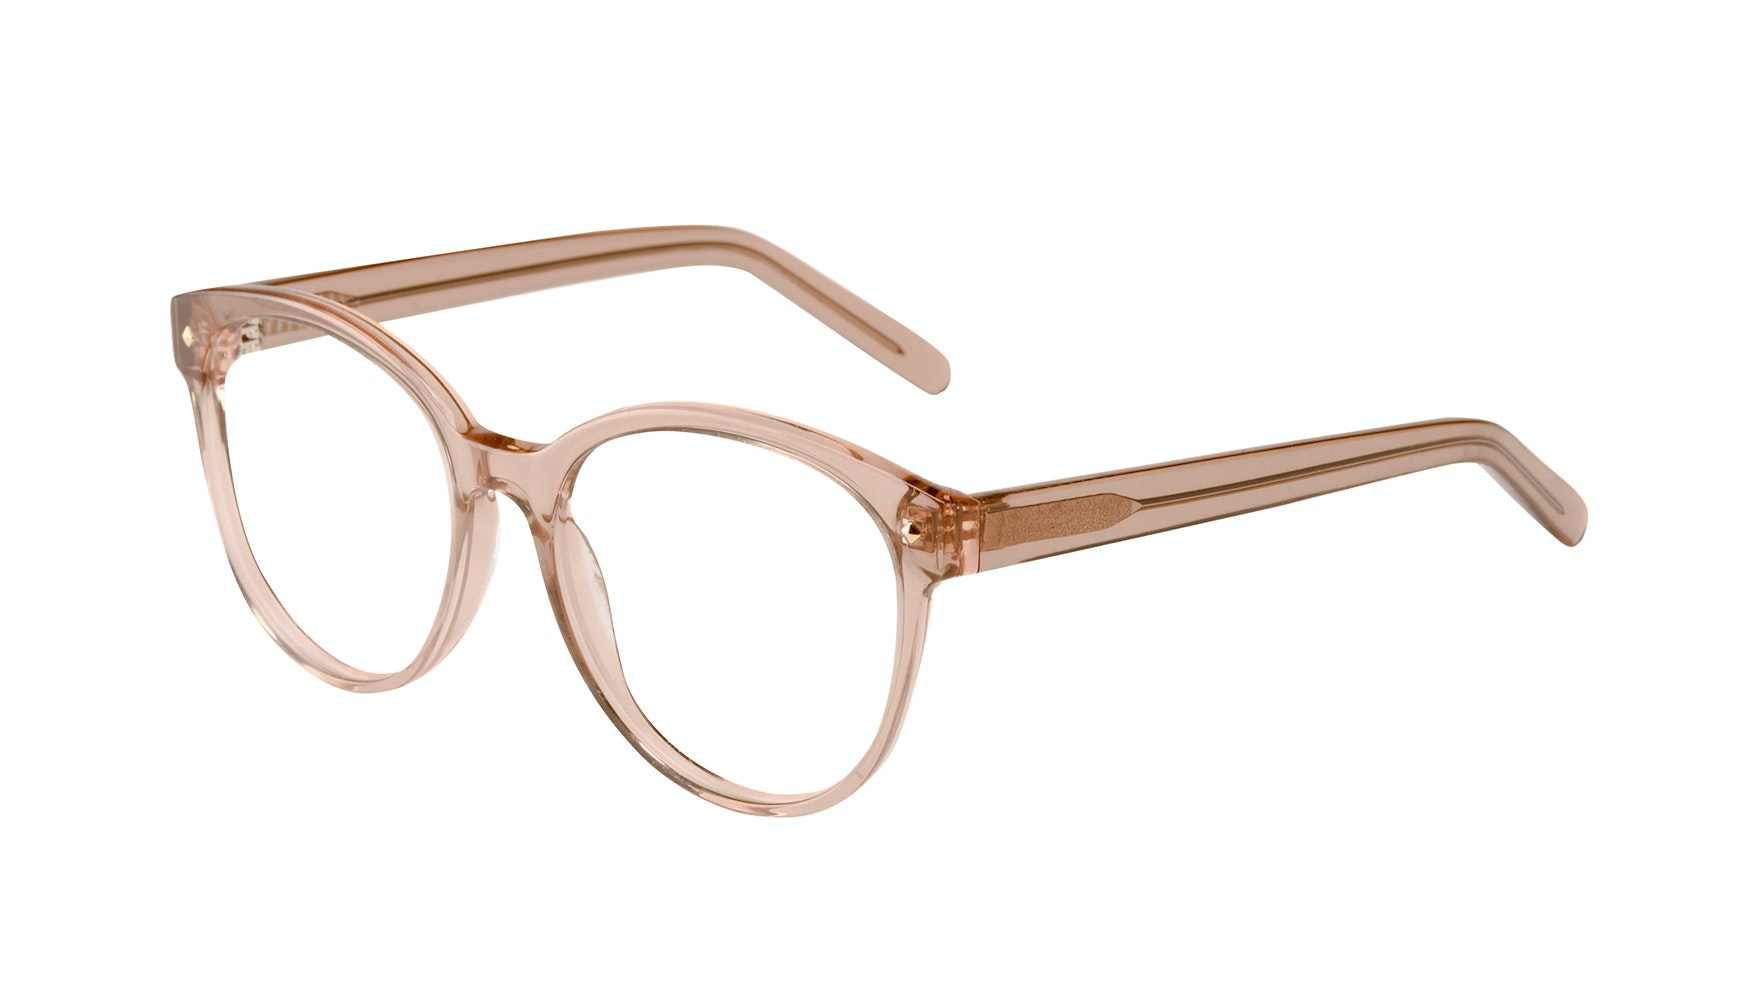 Affordable Fashion Glasses Round Eyeglasses Women Eclipse Toffee Tilt